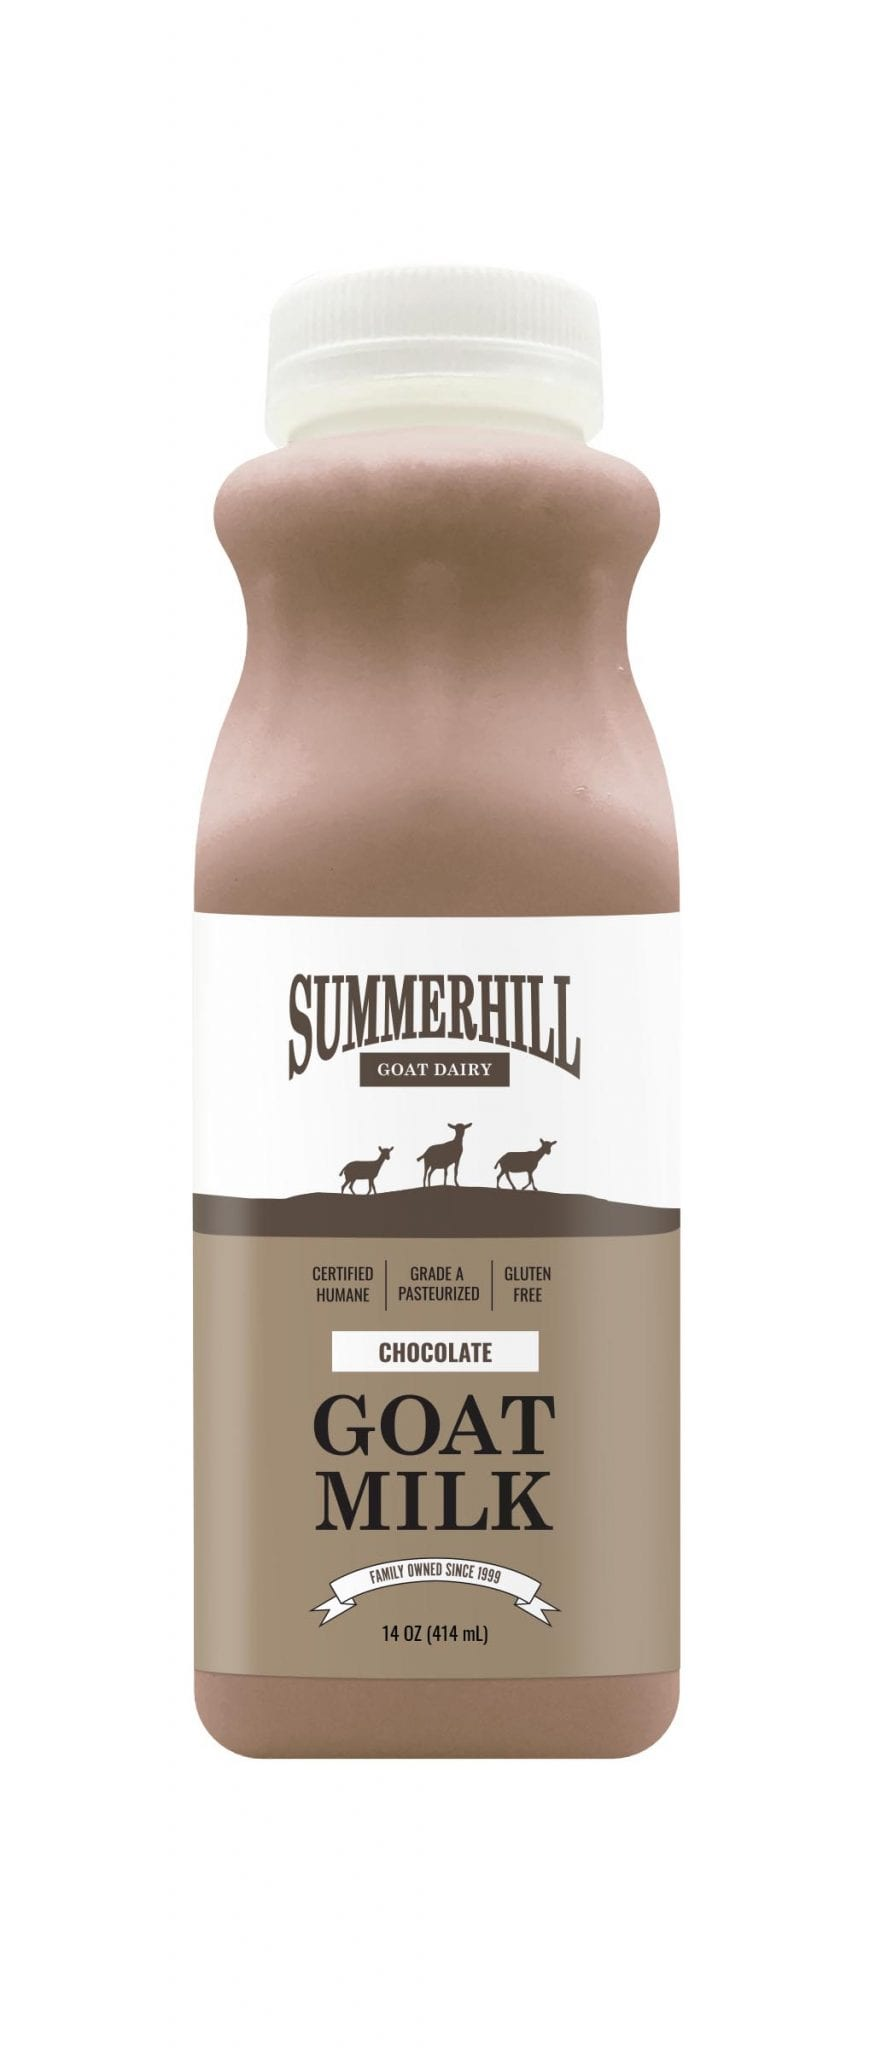 Chocolate goat milk 14oz bottle